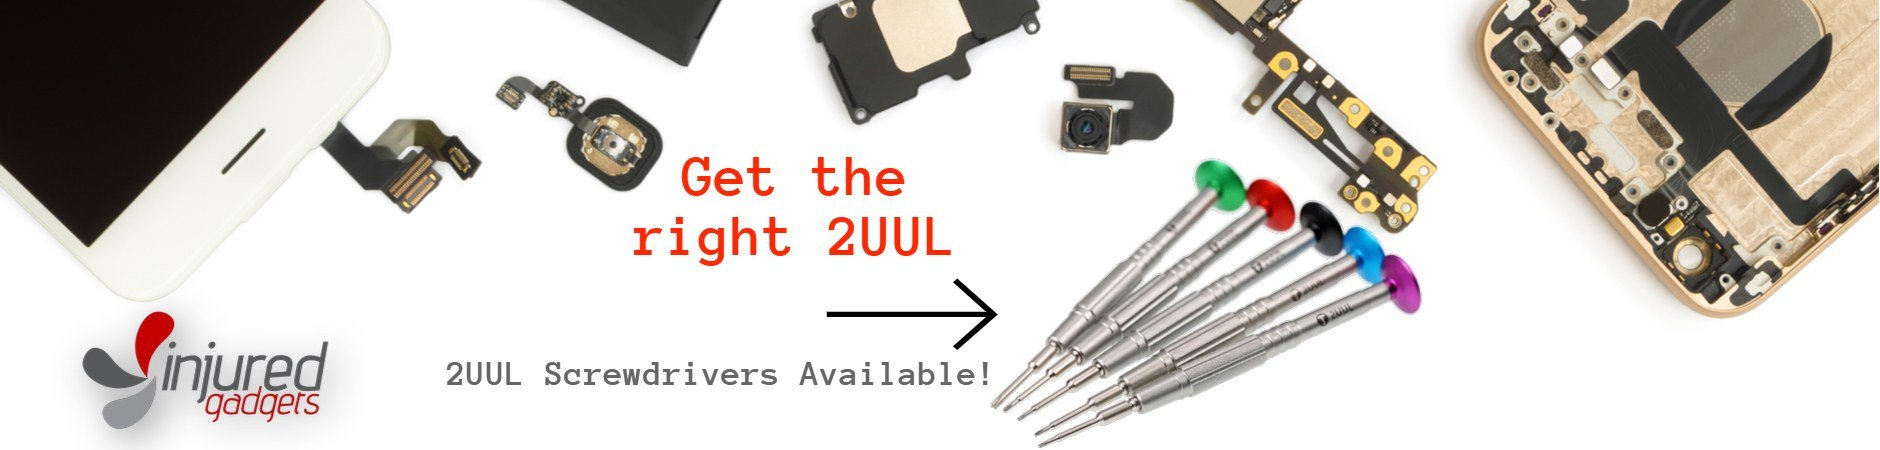 2UUL Screwdrivers now available!